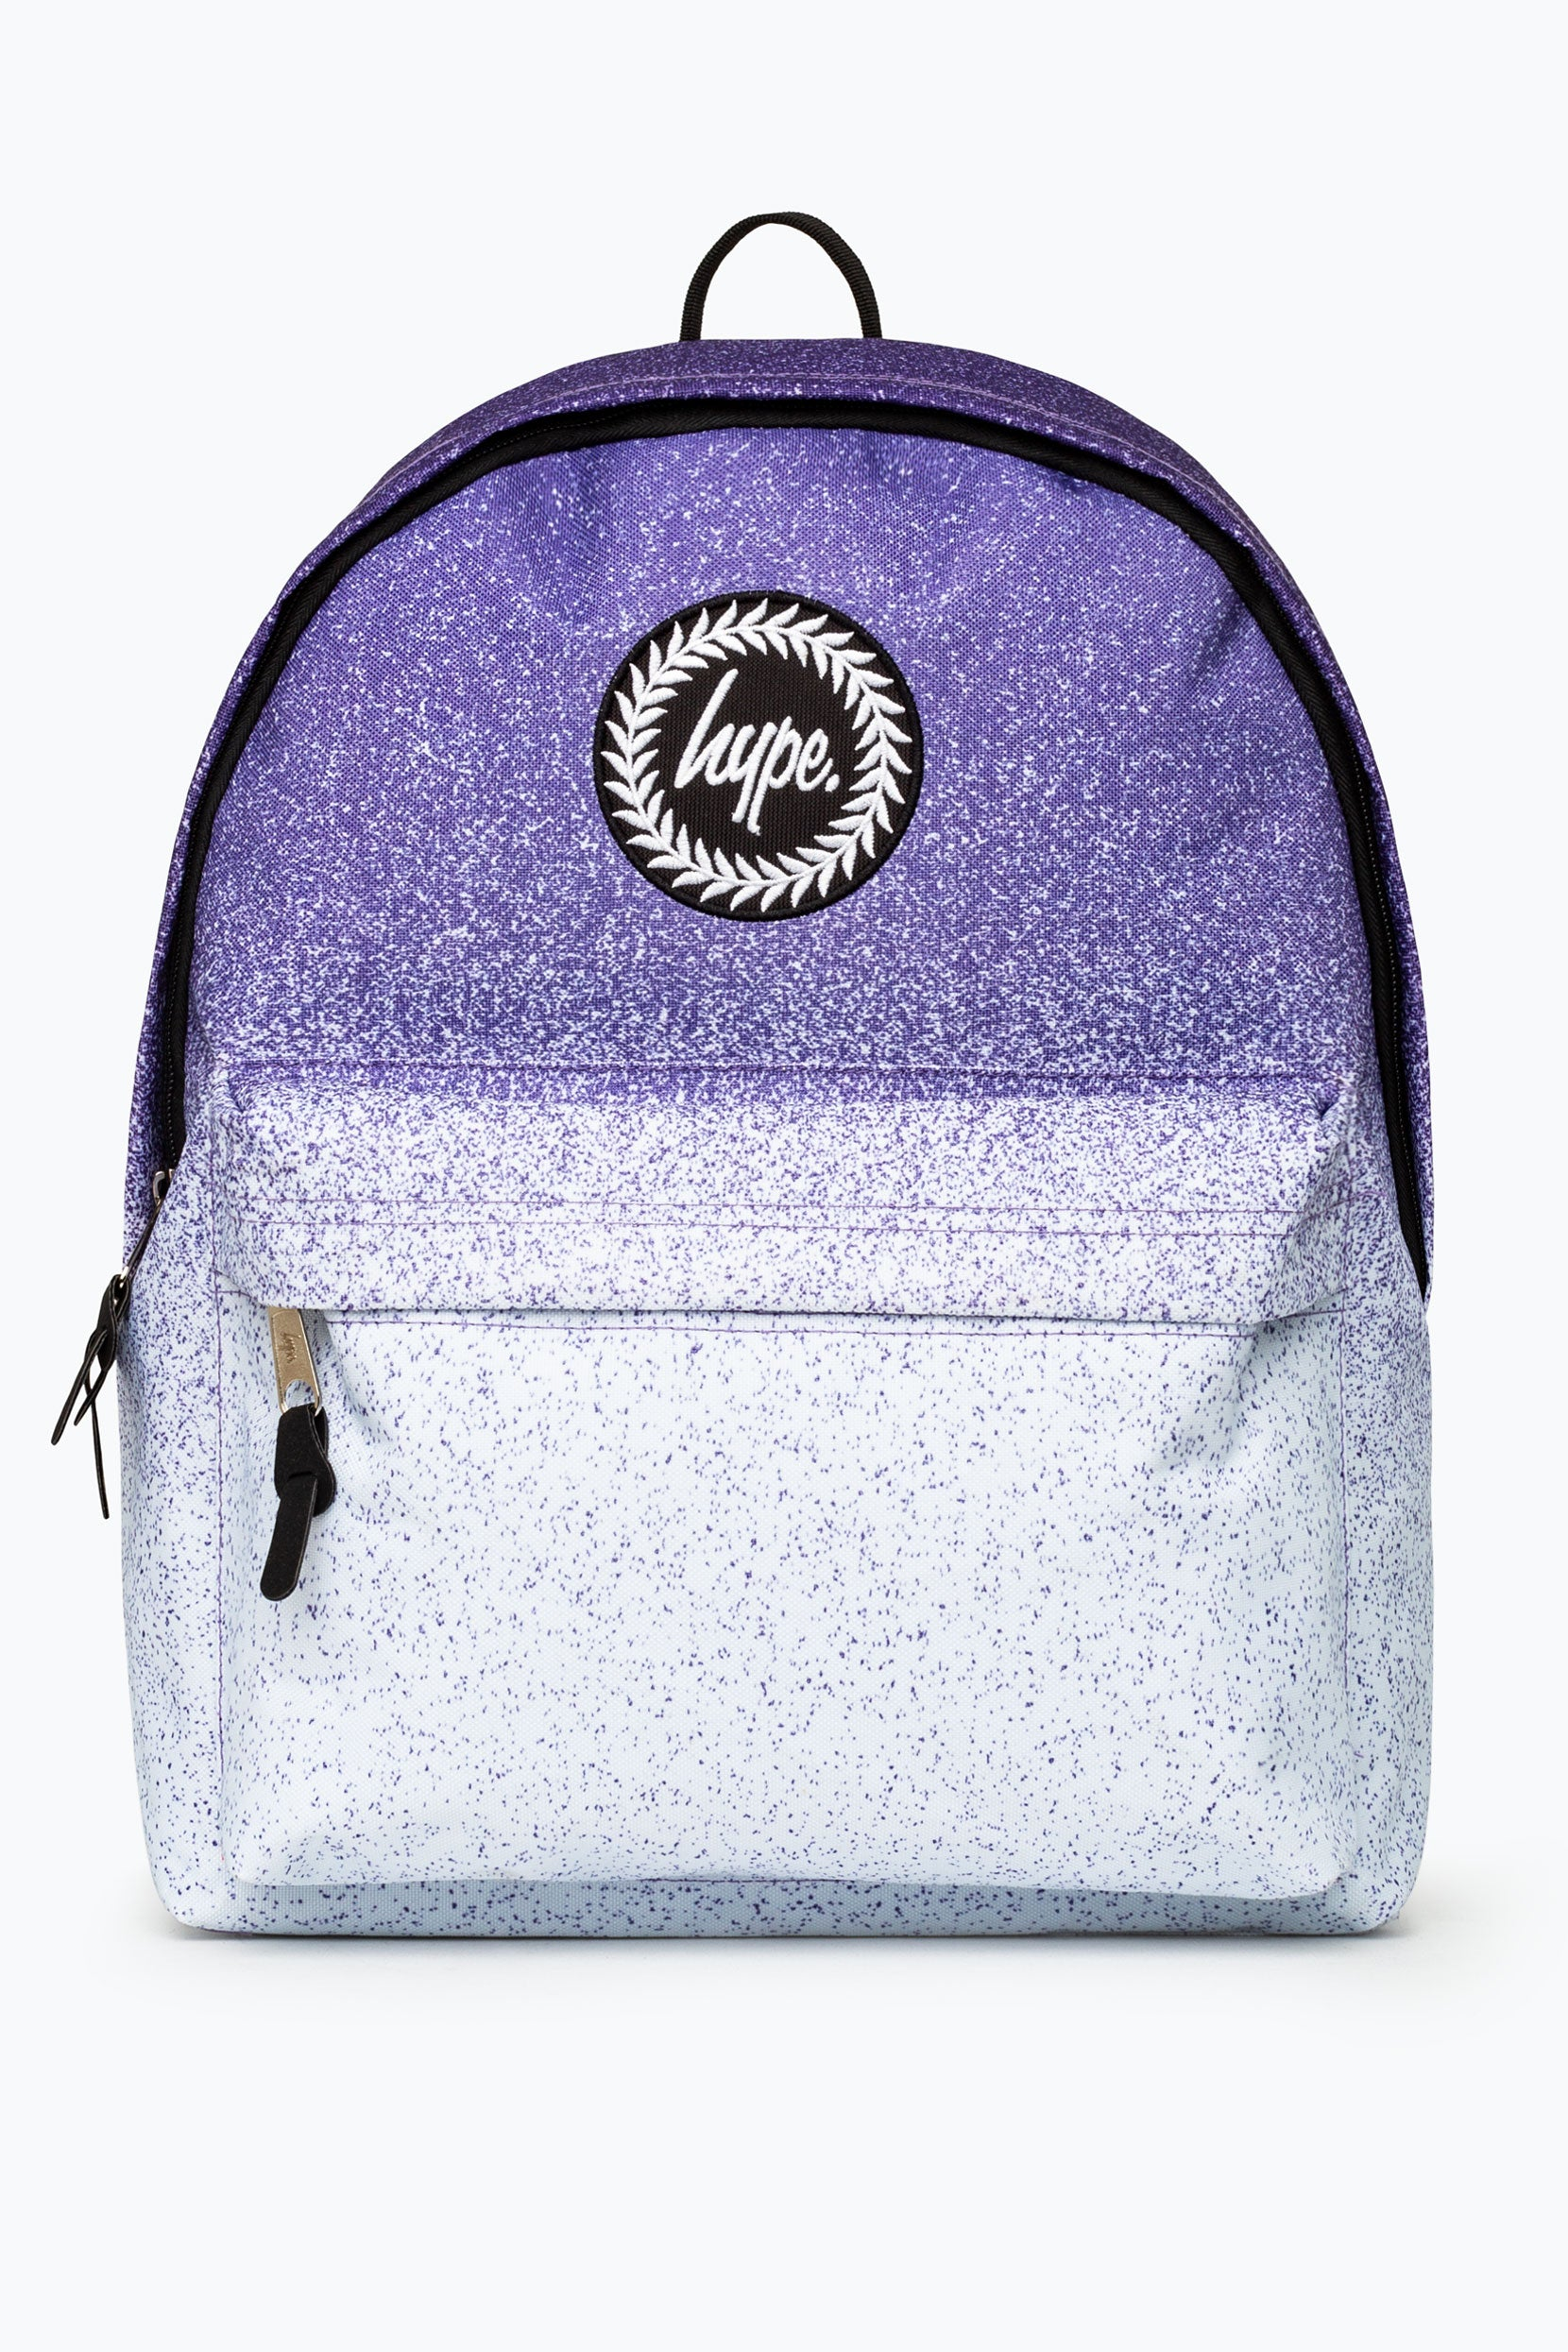 new appearance low price wholesale HYPE BLUE POWDER SPECKLE FADE BACKPACK 5057896041865 | eBay